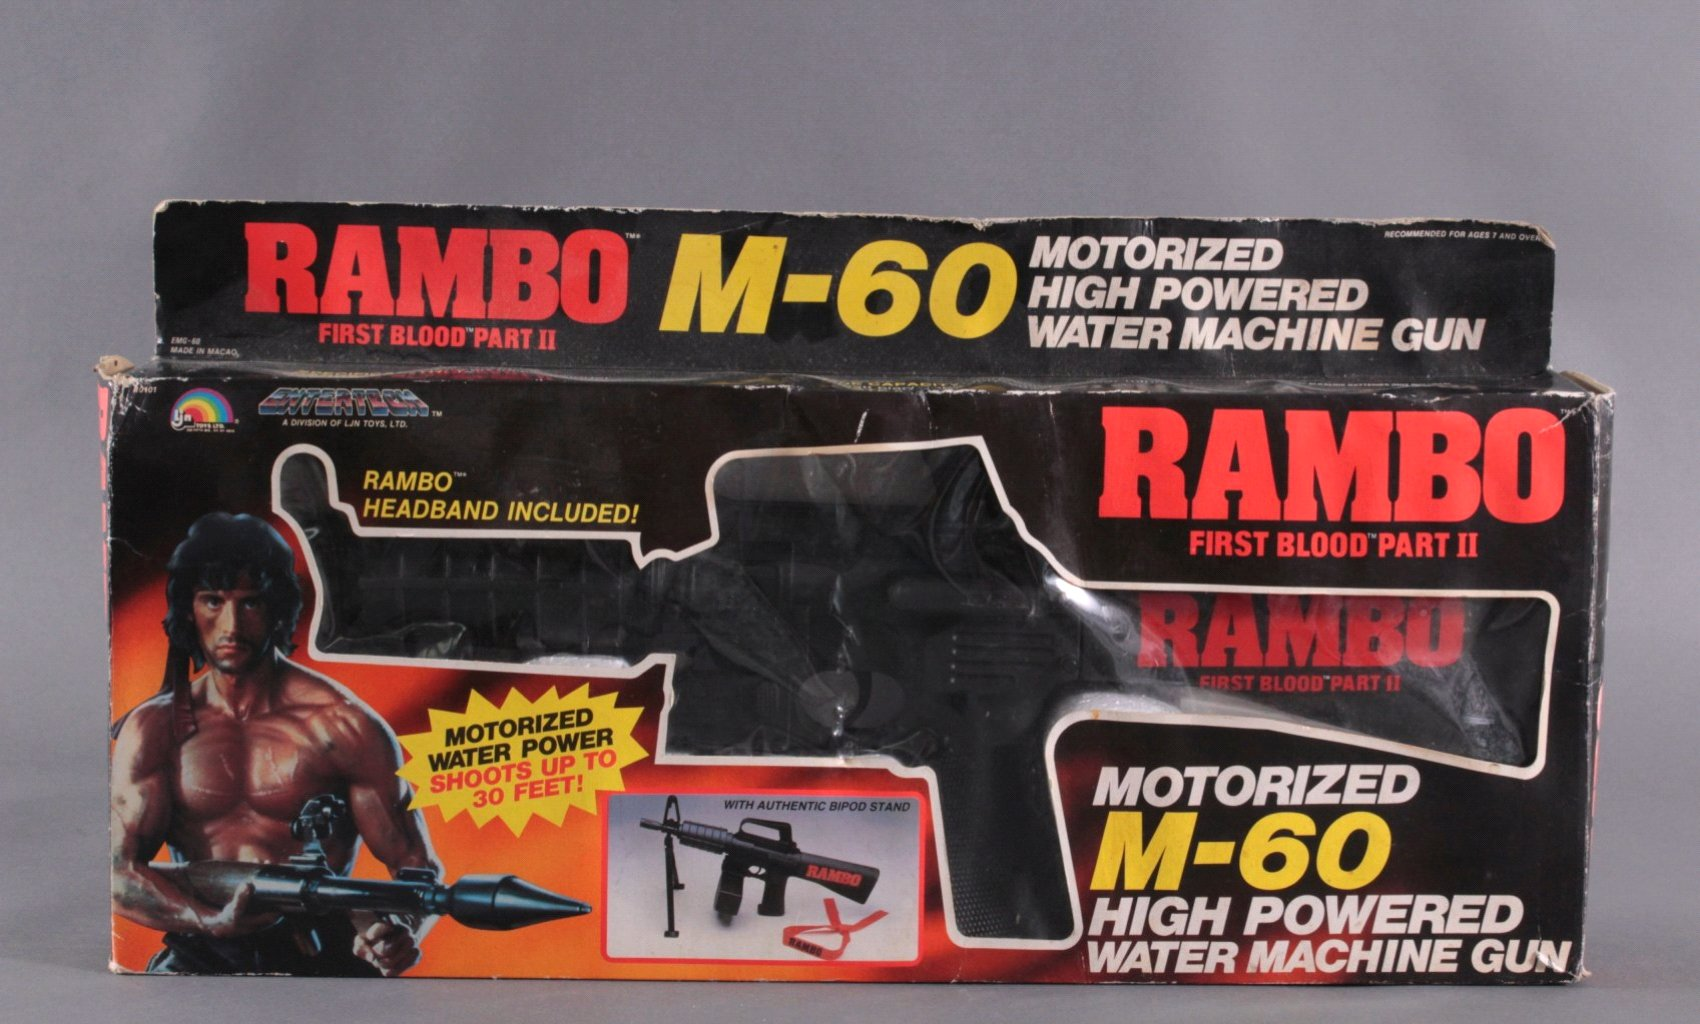 RAMBO – M-60 Motorized High Powered Water Machine Gun